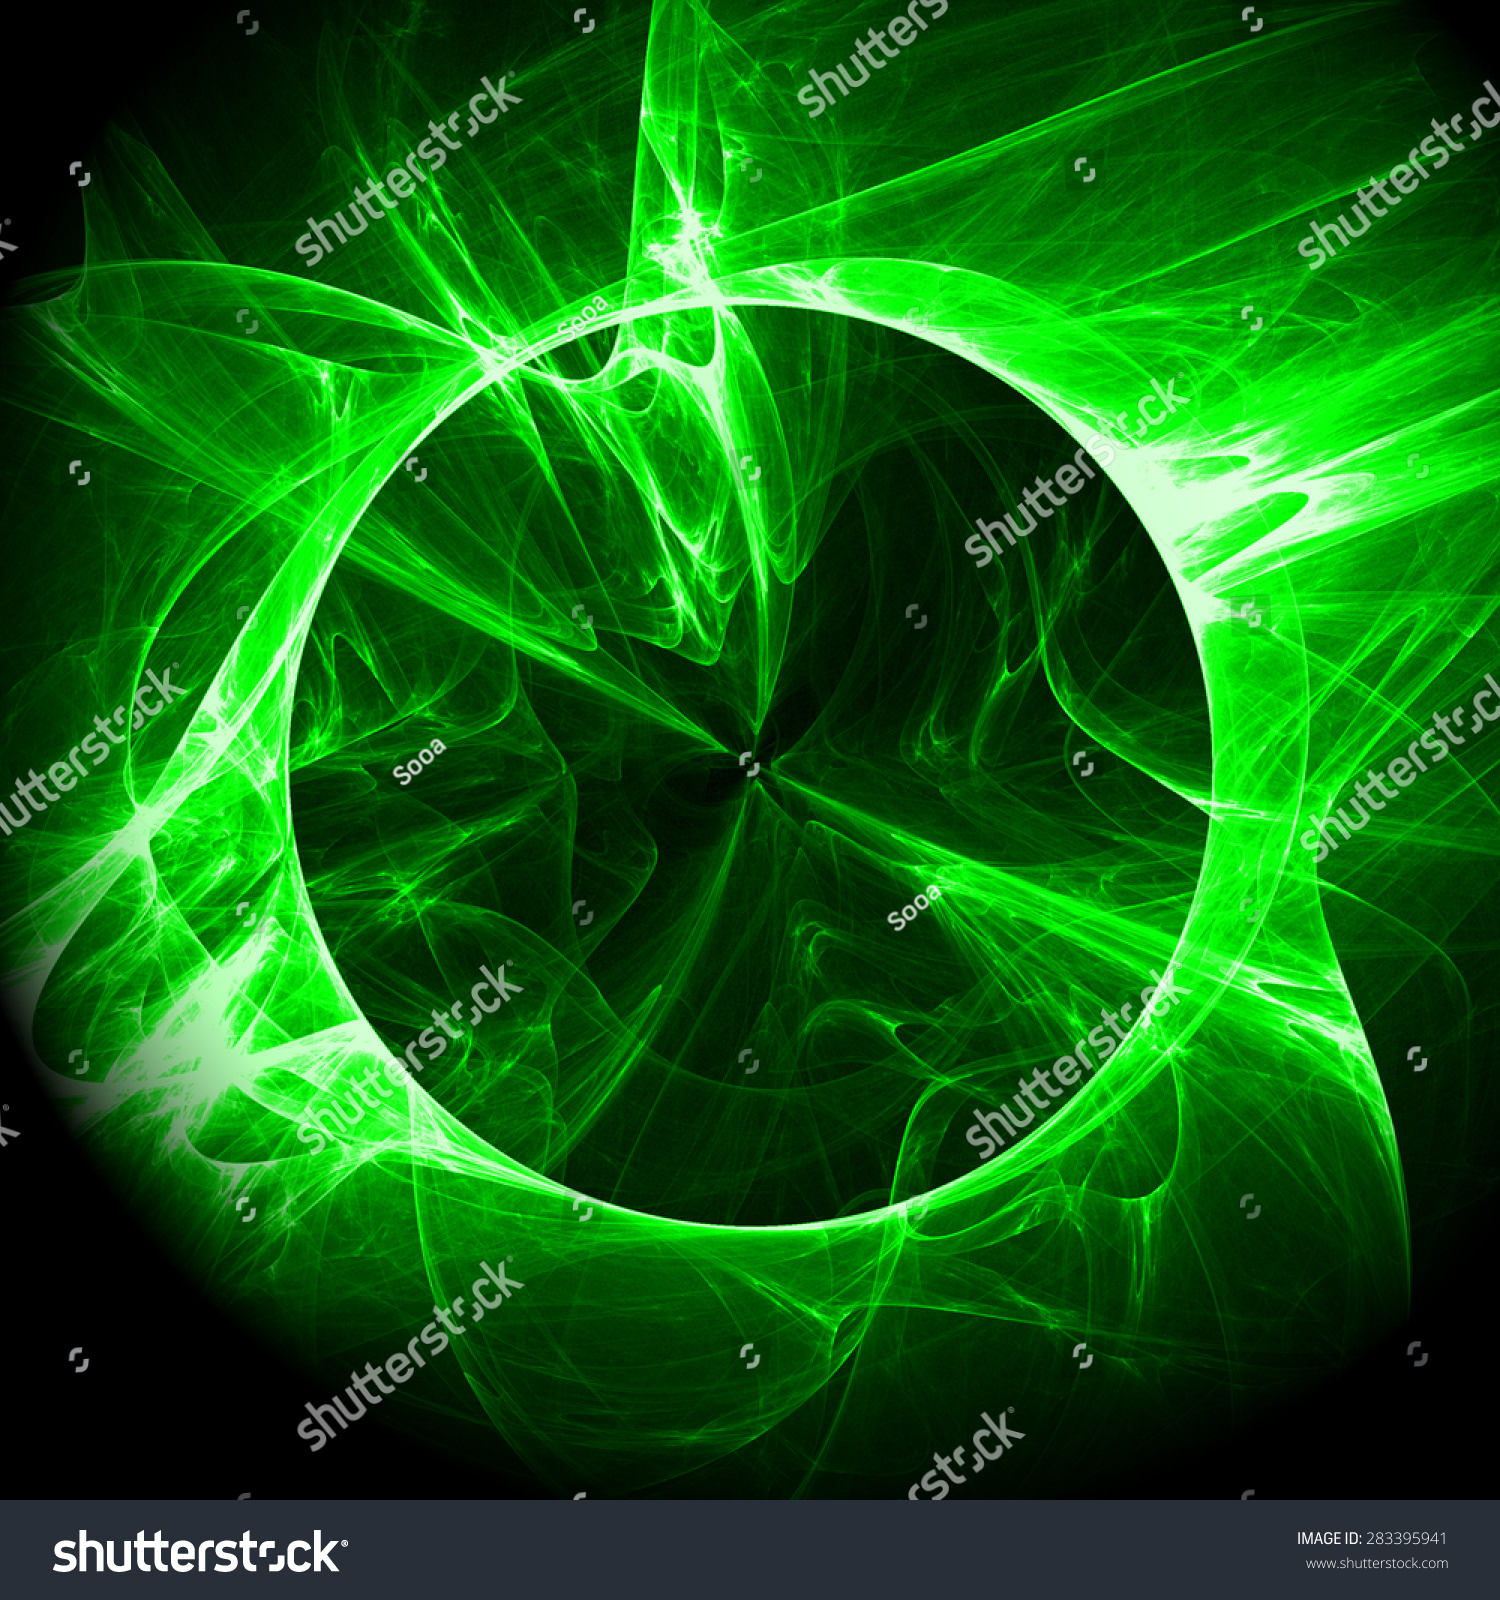 Green Light Effects Abstract Illustration Background Stock ... for Green Light Effects Background  104xkb